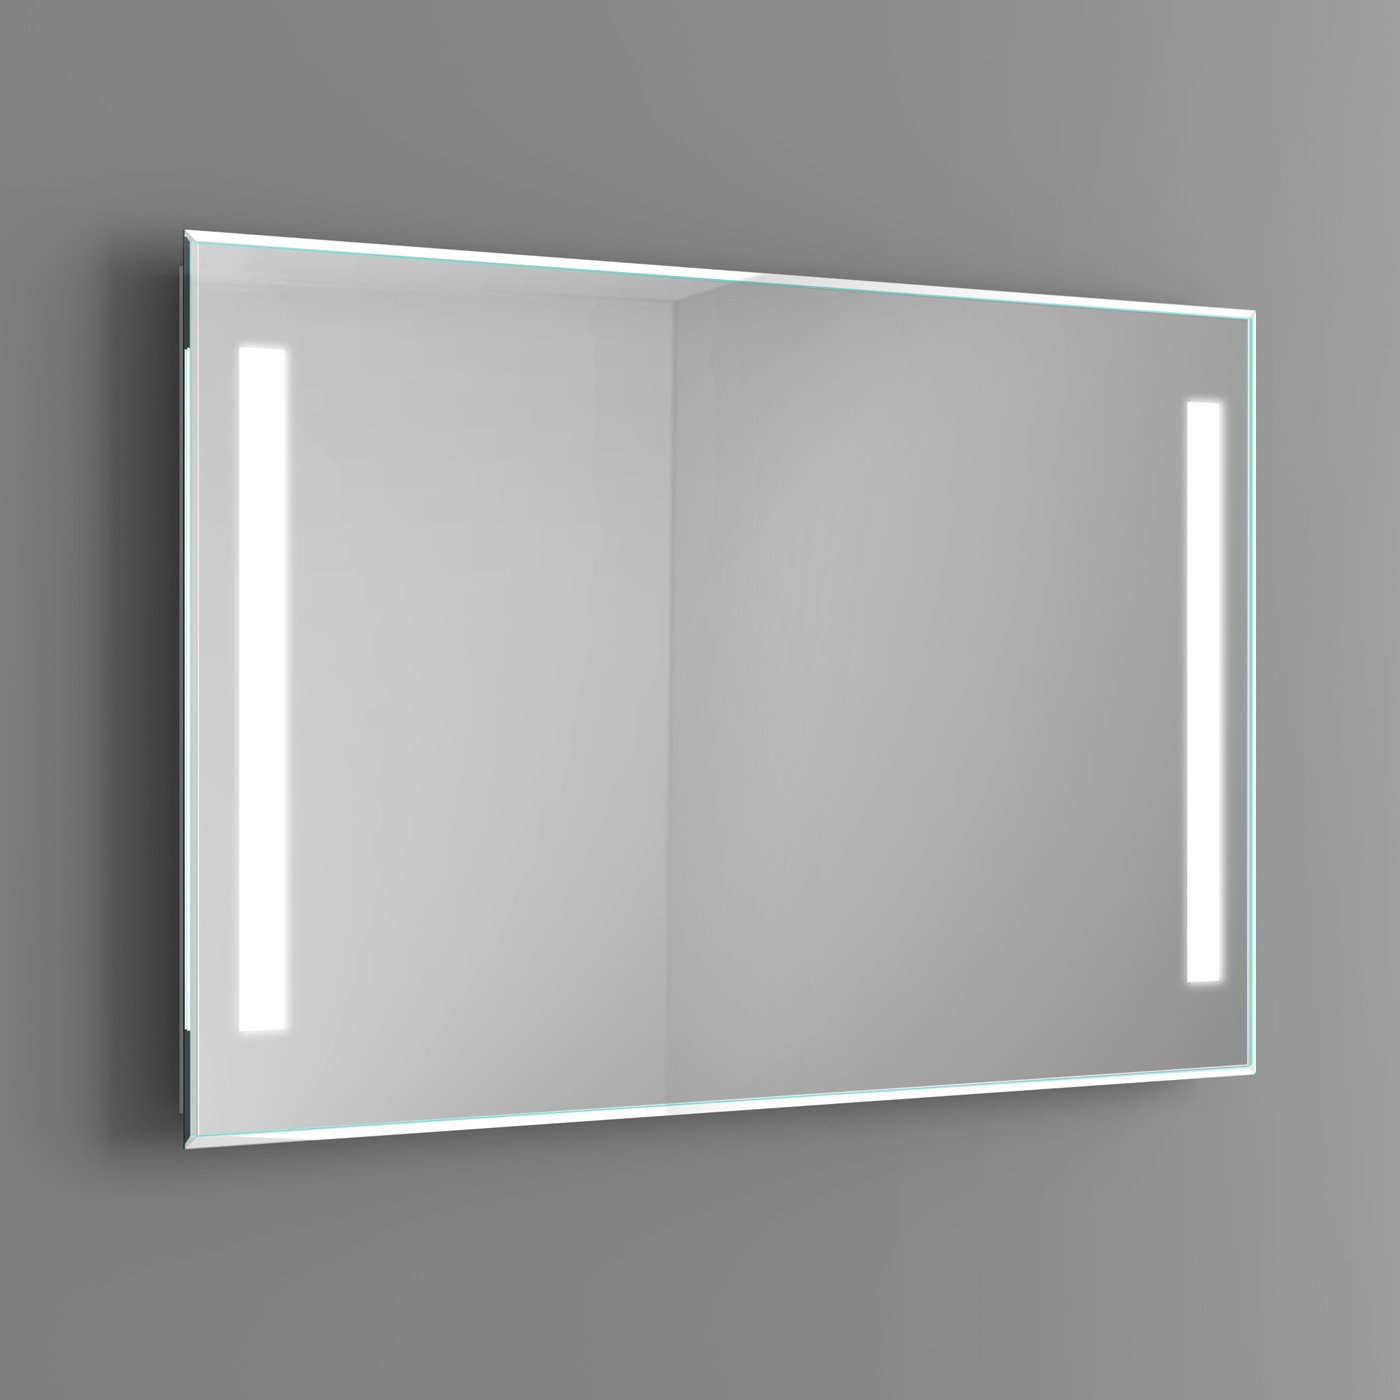 600 x 800 mm Modern Illuminated Backlit LED Light Bathroom Mirror ML7003 iBathUK